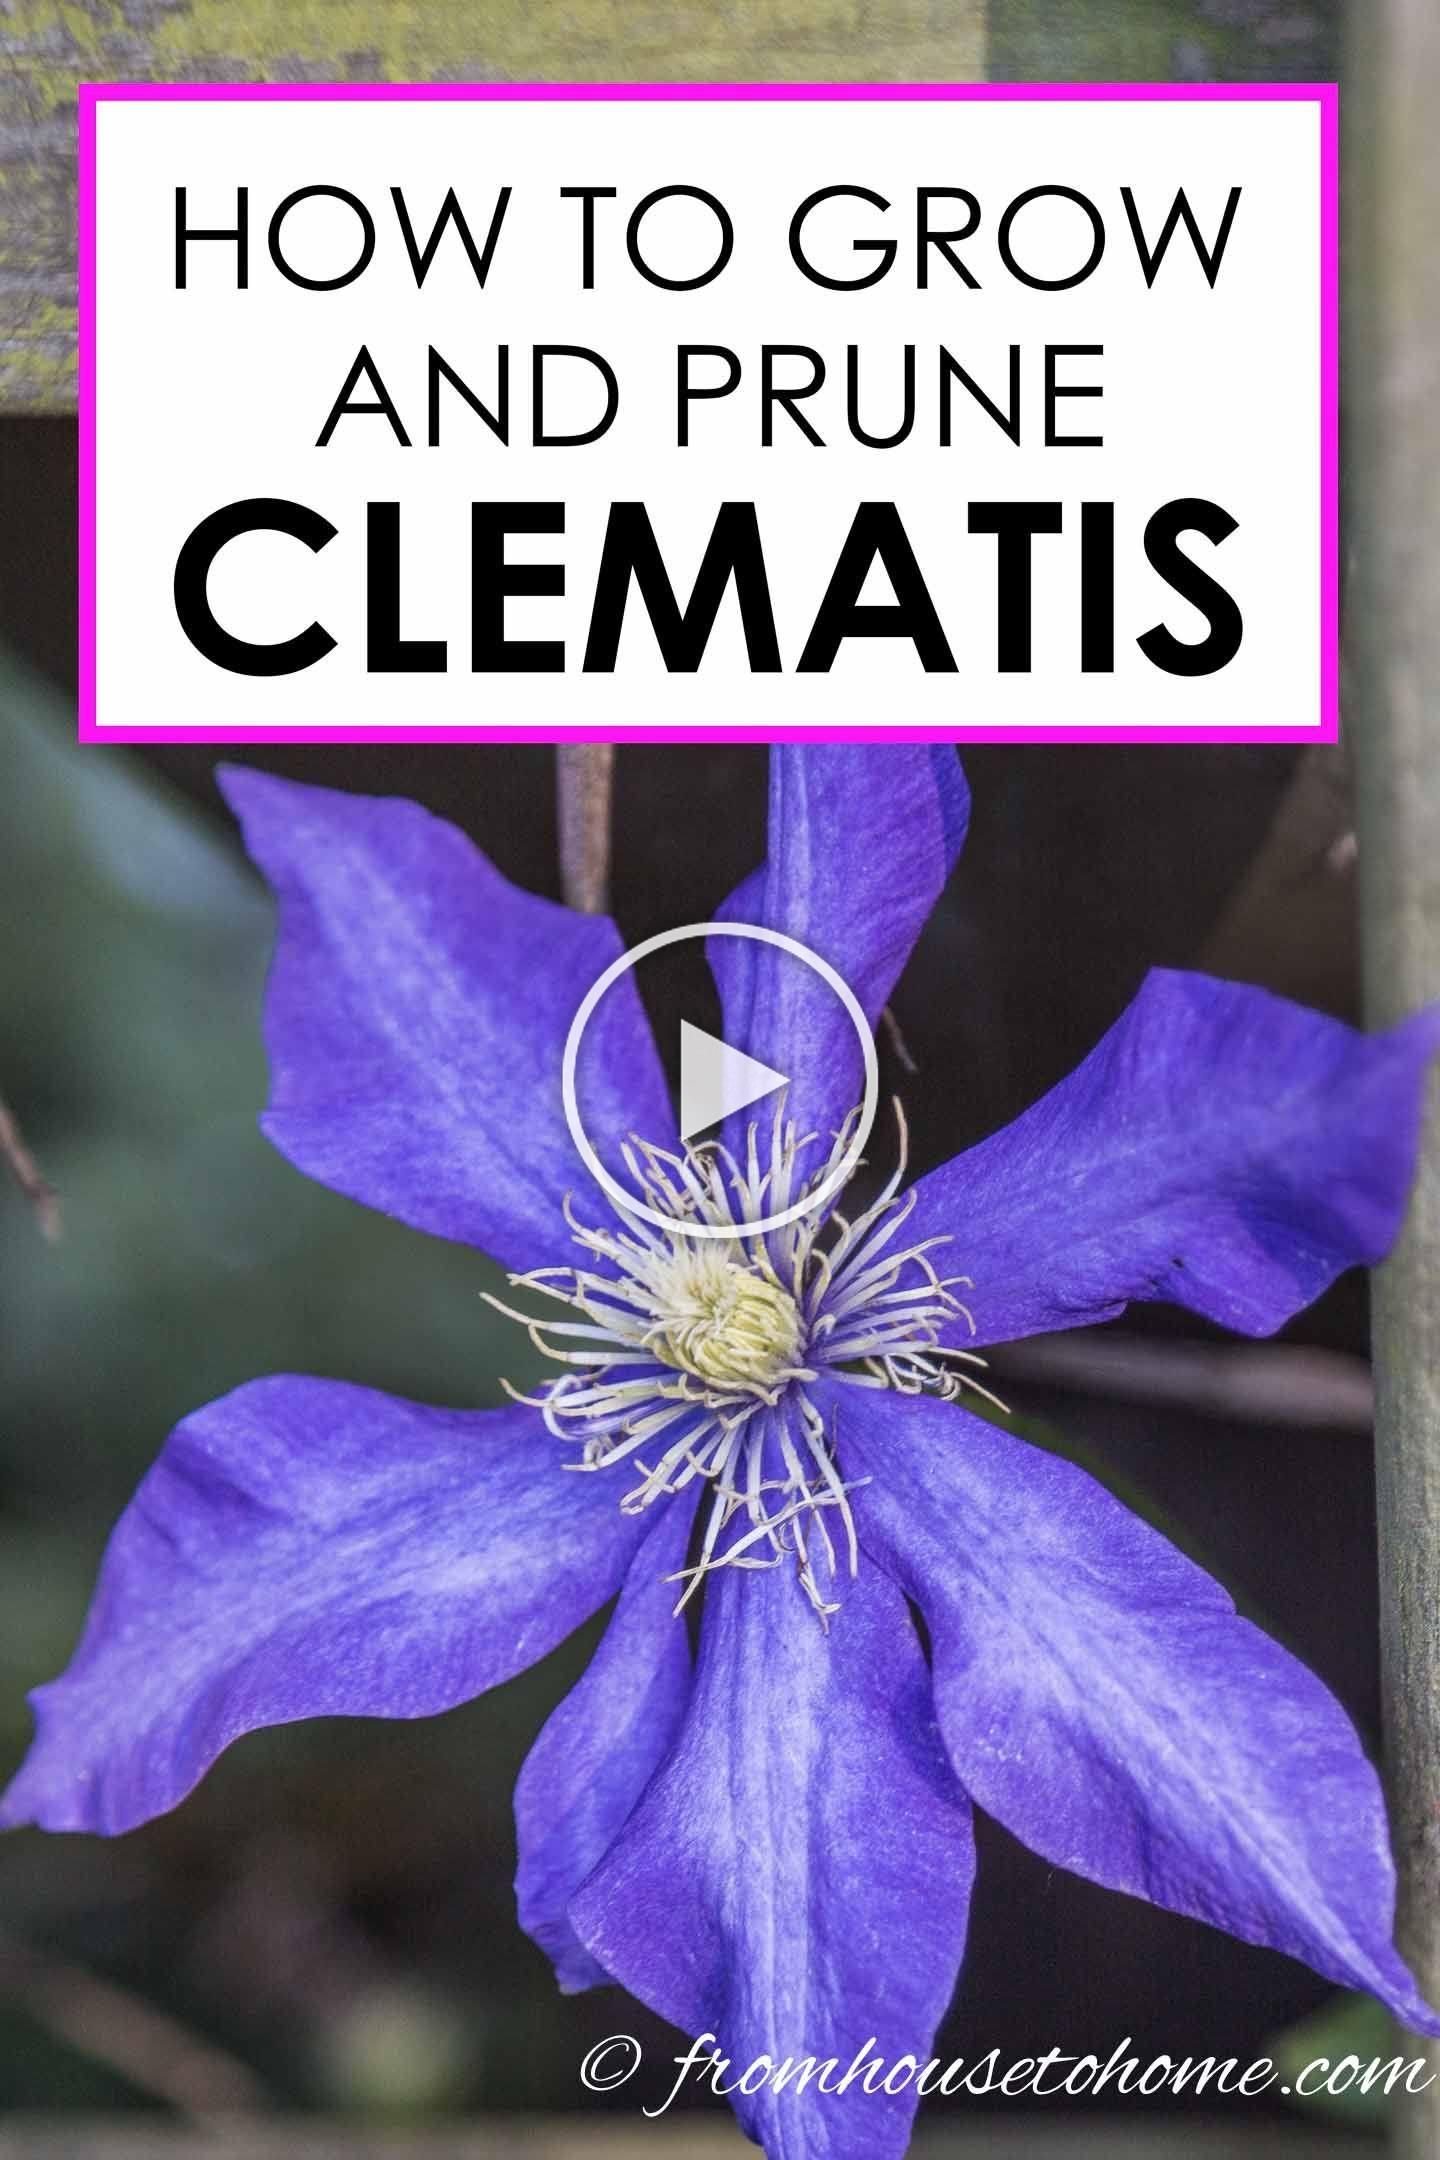 Clematis is an easy to grow perennial vine that thrives in part shade With its huge blooms in pink purple red white and blue I think every garden should have at least one...